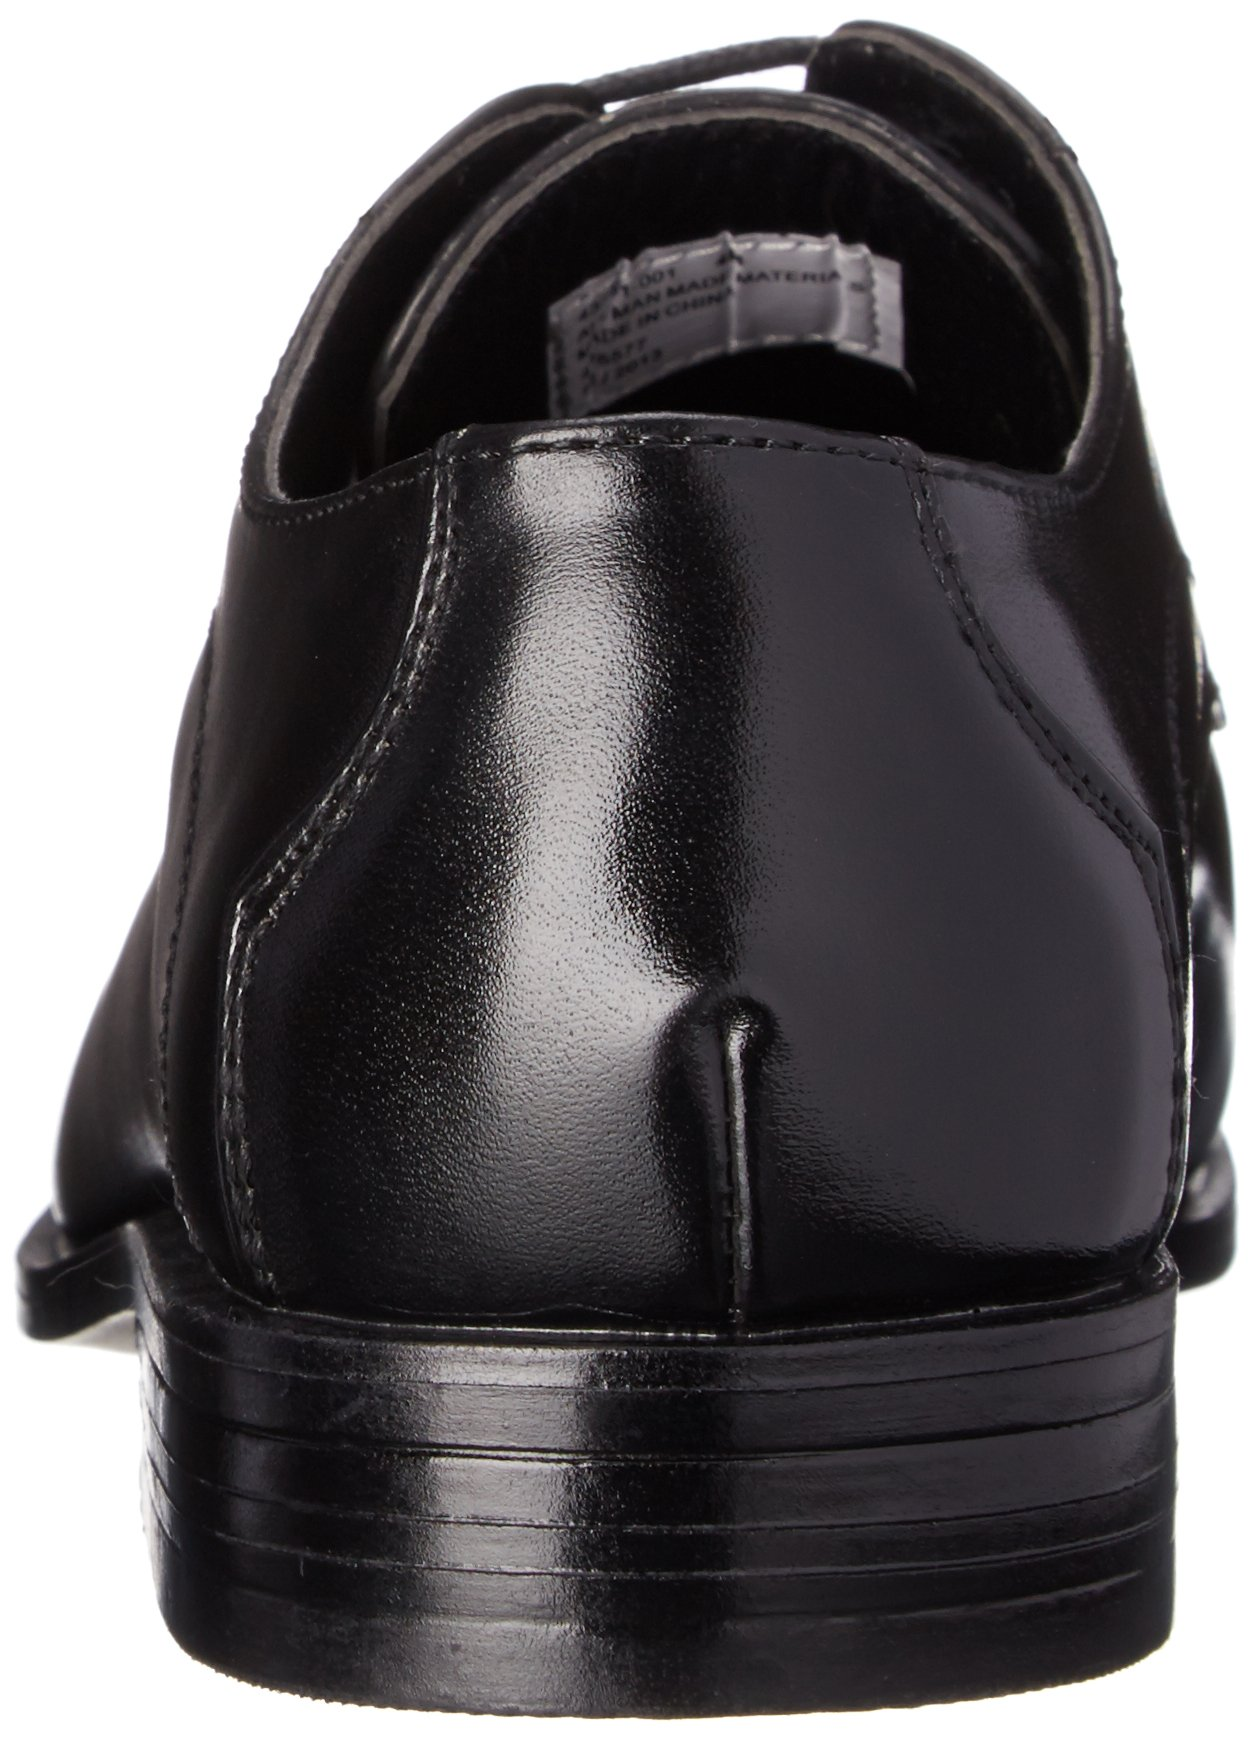 Stacy Adams Carmichael Plain Toe Lace-up Uniform Oxford Dress Shoe (Little Kid/Big Kid),Black,4 M US Big Kid by STACY ADAMS (Image #2)